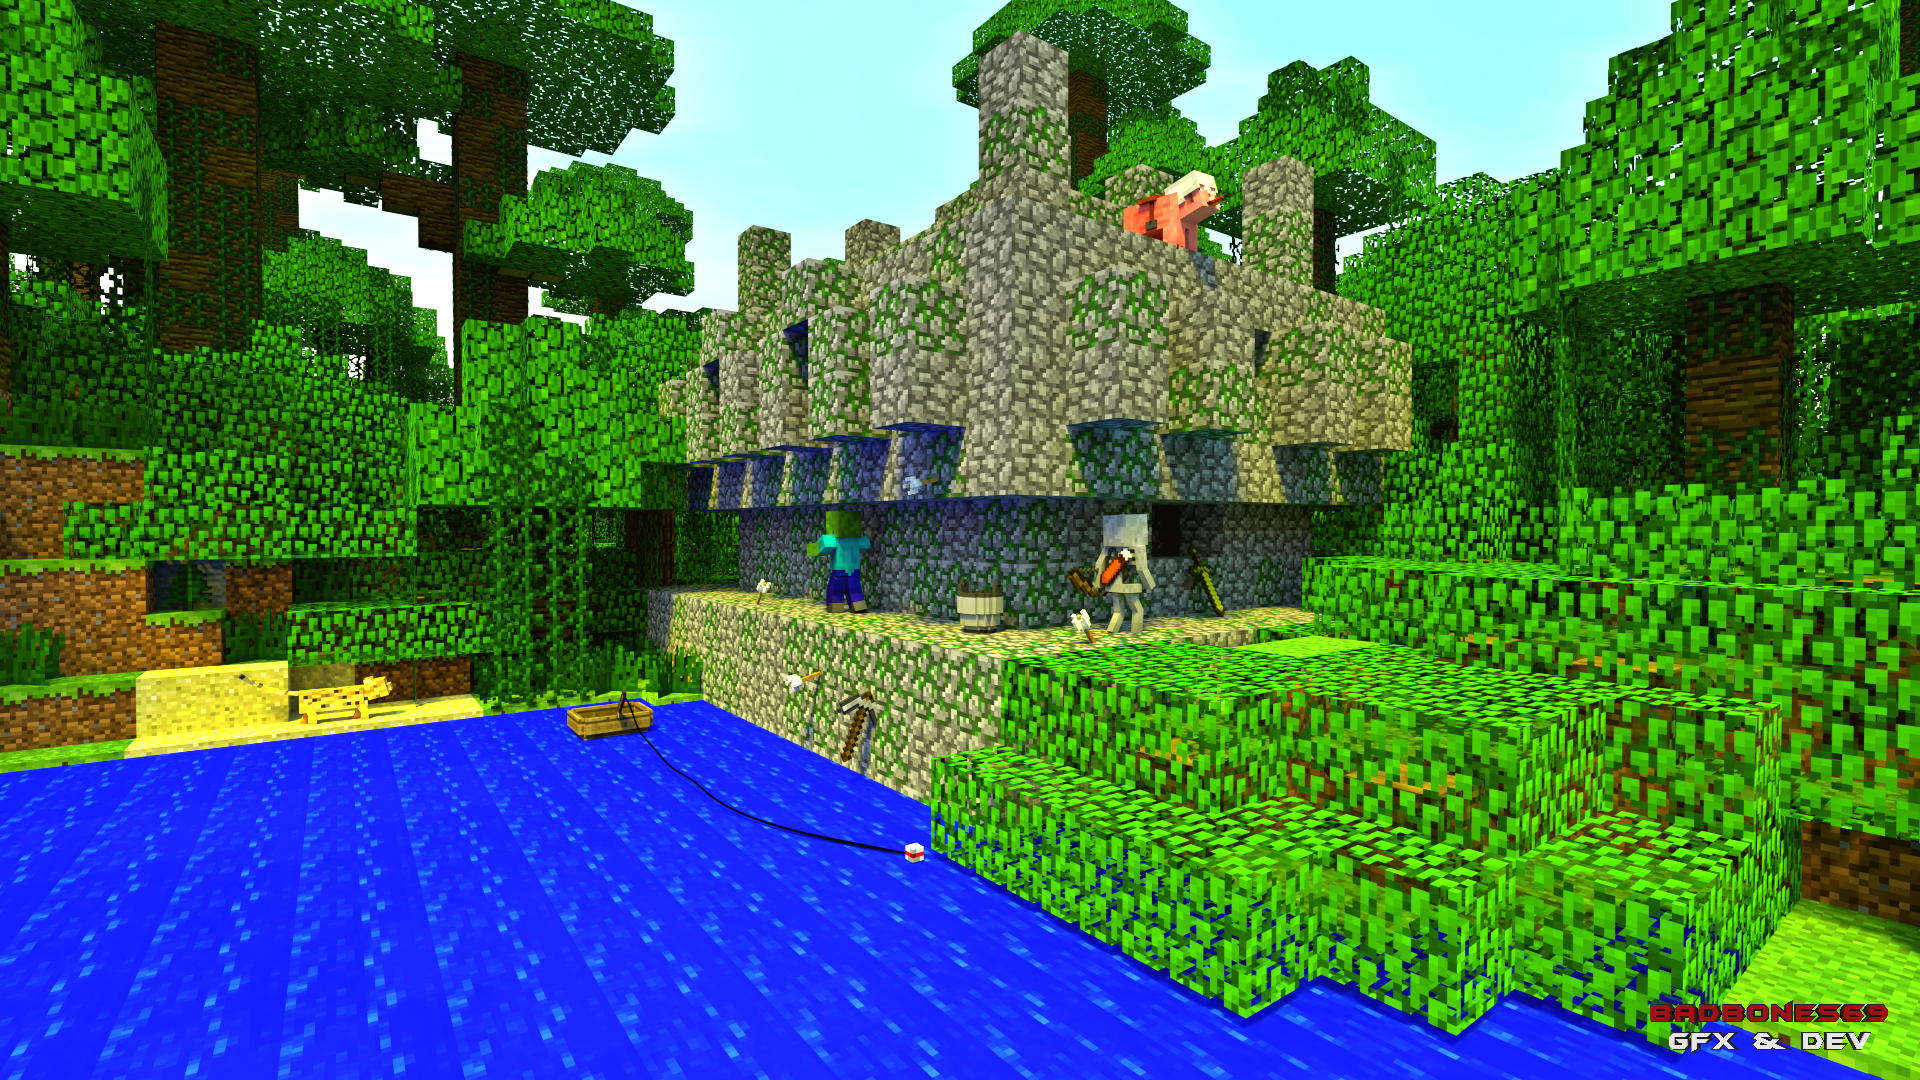 Jungle temple wallpaper full hd fond d 39 cran and arri re plan 1920x1080 id 615963 - Minecraft cochon ...